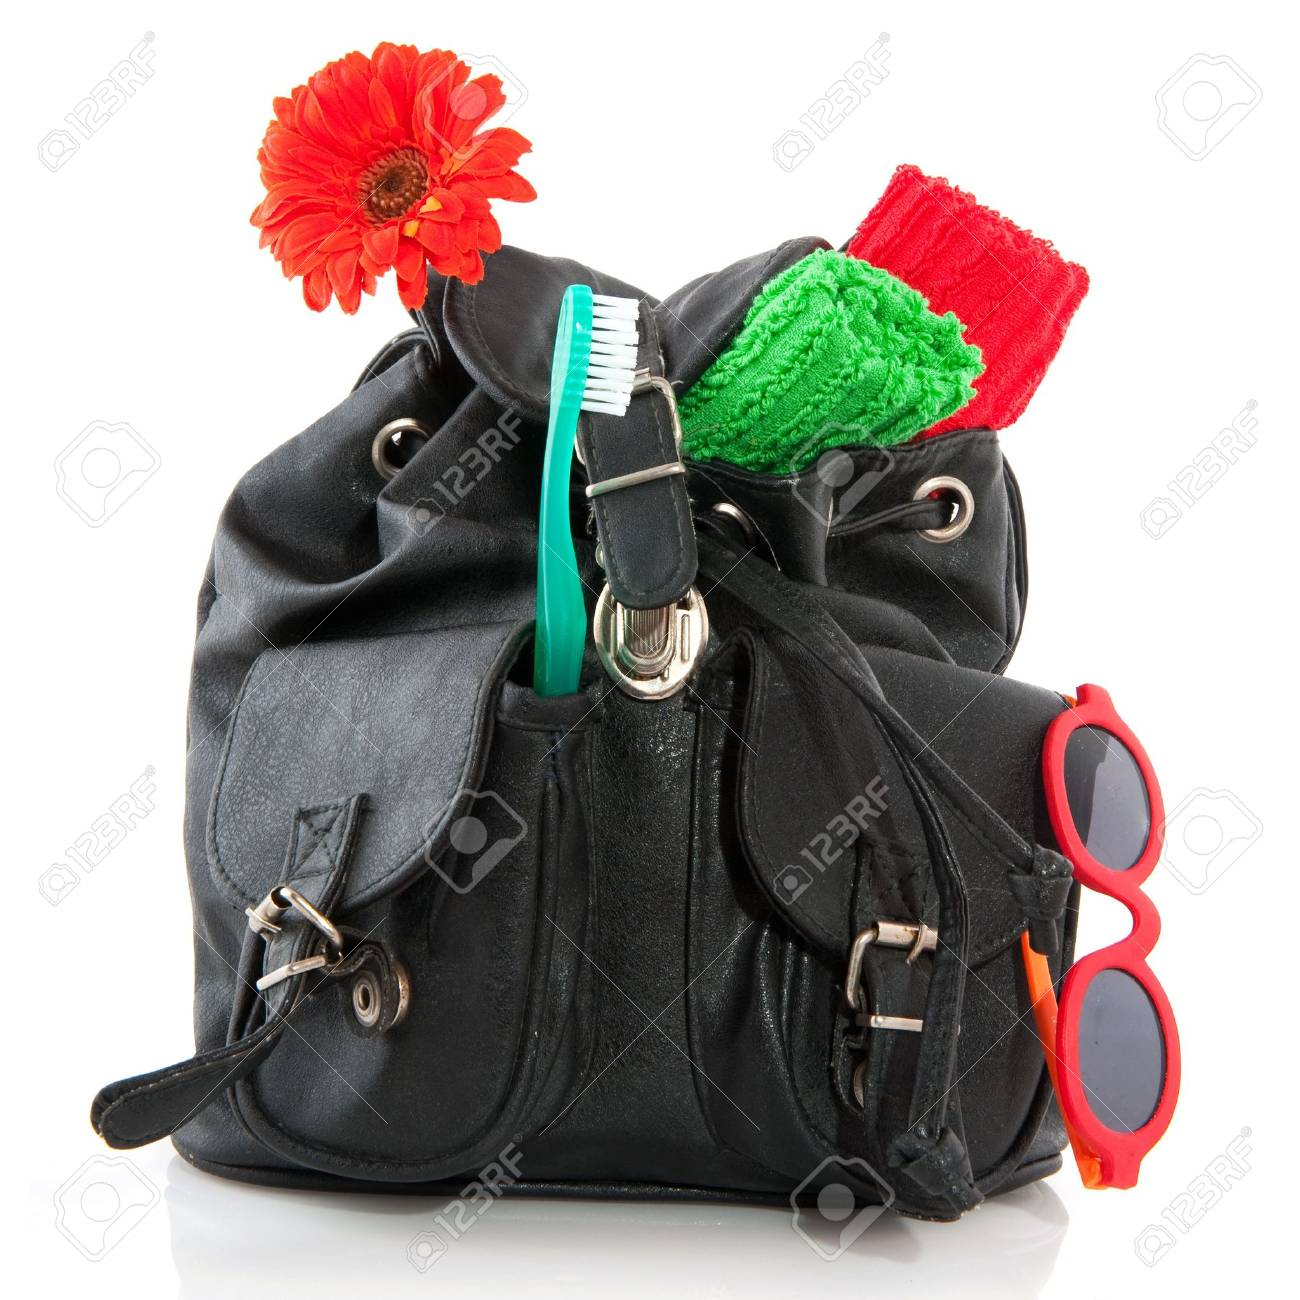 traveling by ruck sack or back pack Stock Photo - 6351936